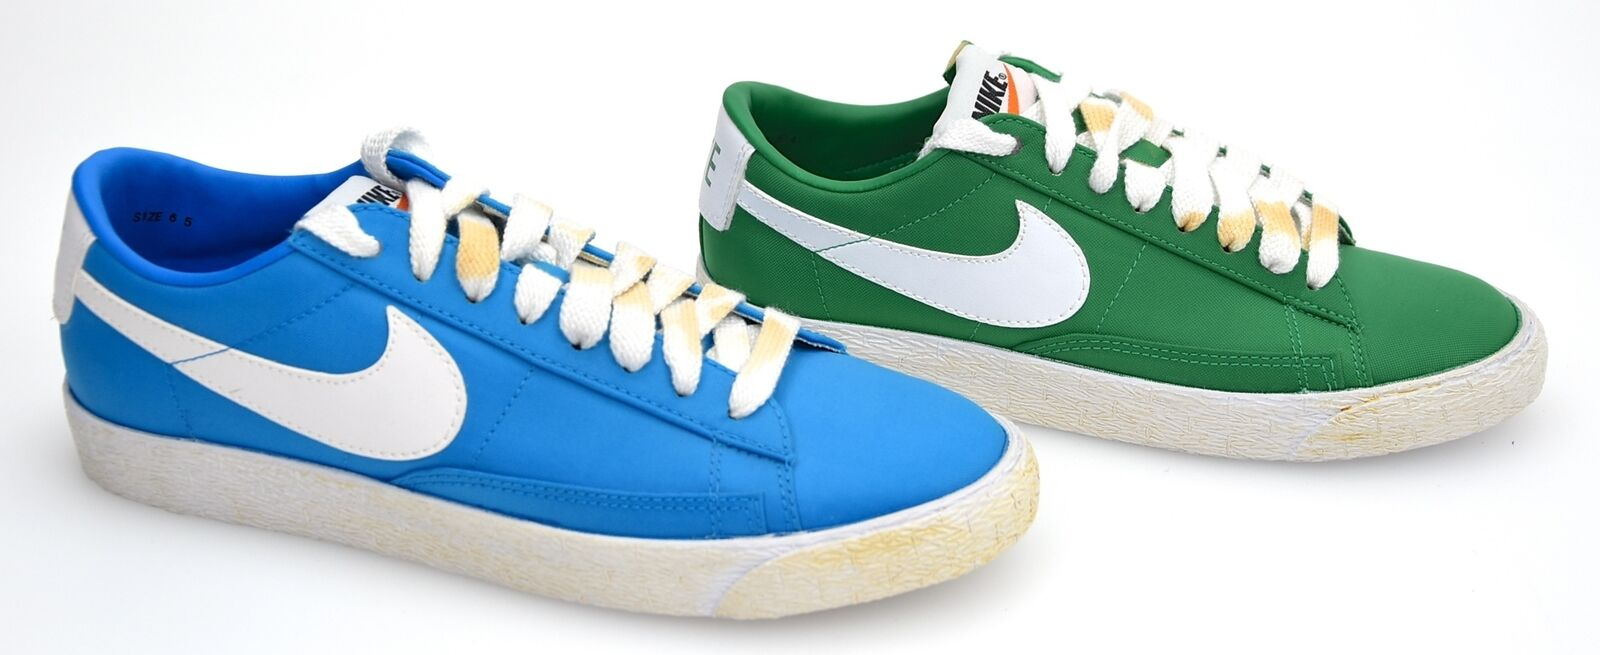 6ef201243c8f6 NIKE WOMAN baskets chaussures CASUAL FREE TIME CODE CODE CODE BLAZER  PREMIUM (VNTG) 488061